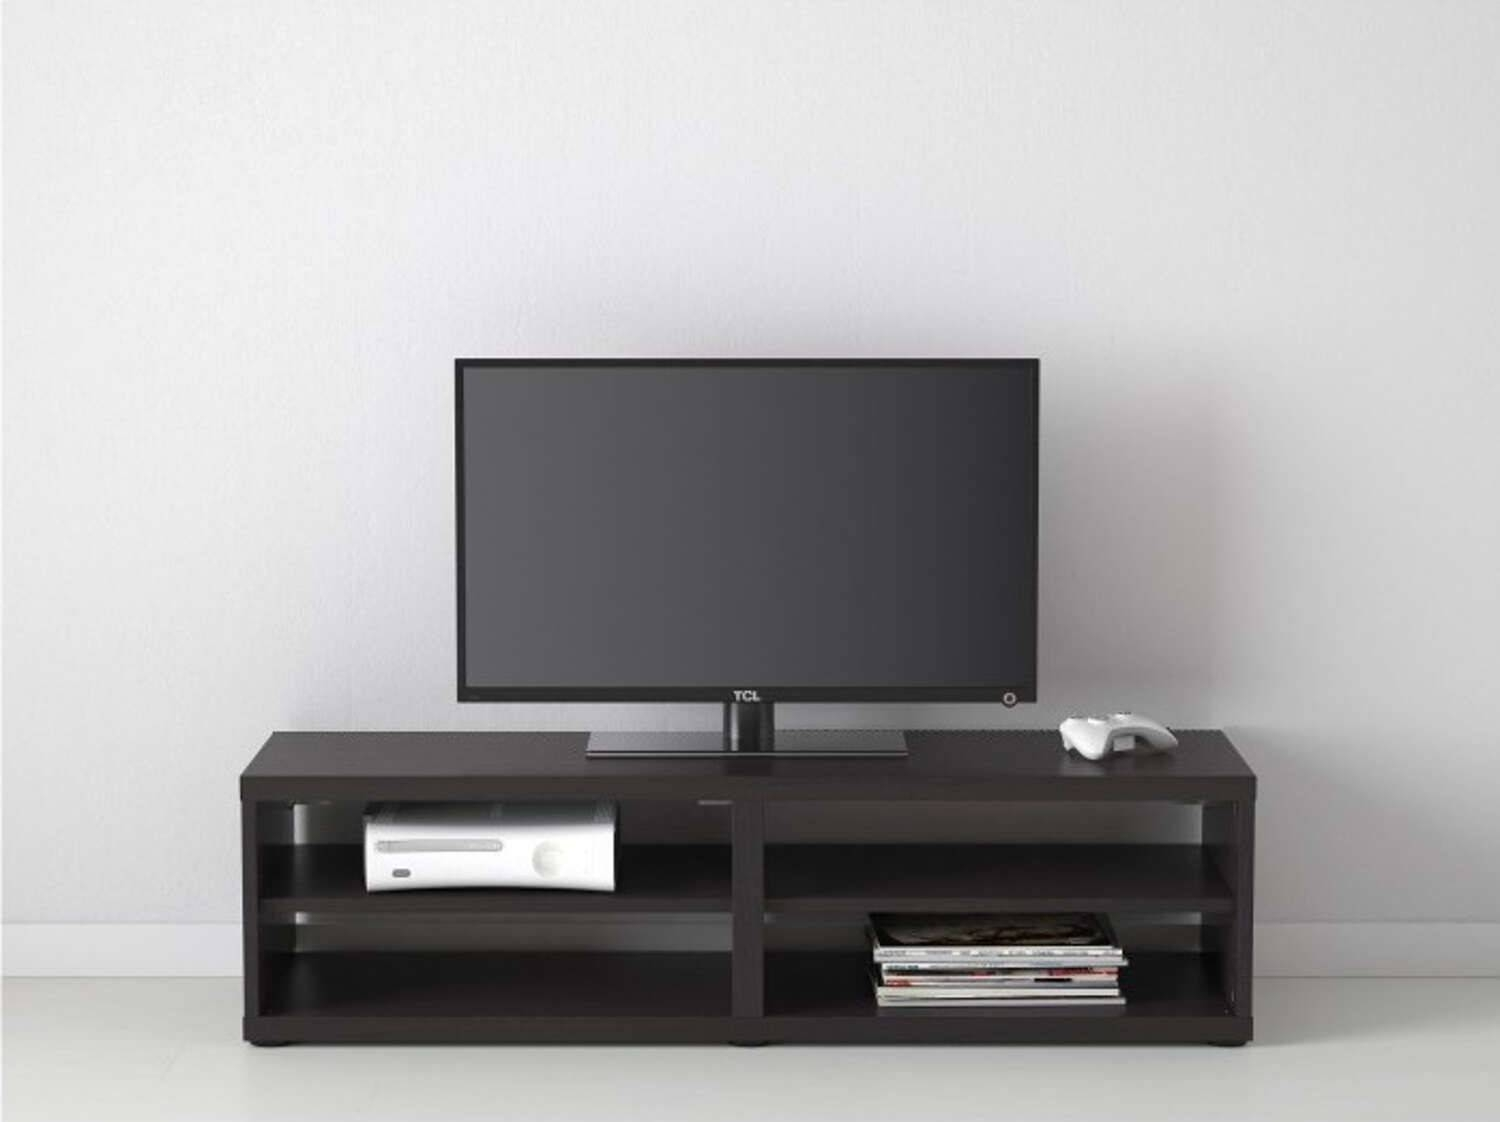 Black Wood Cavani Tv Stand Cabinet | Furniturebox pertaining to Cabinet Tv Stands (Image 5 of 15)